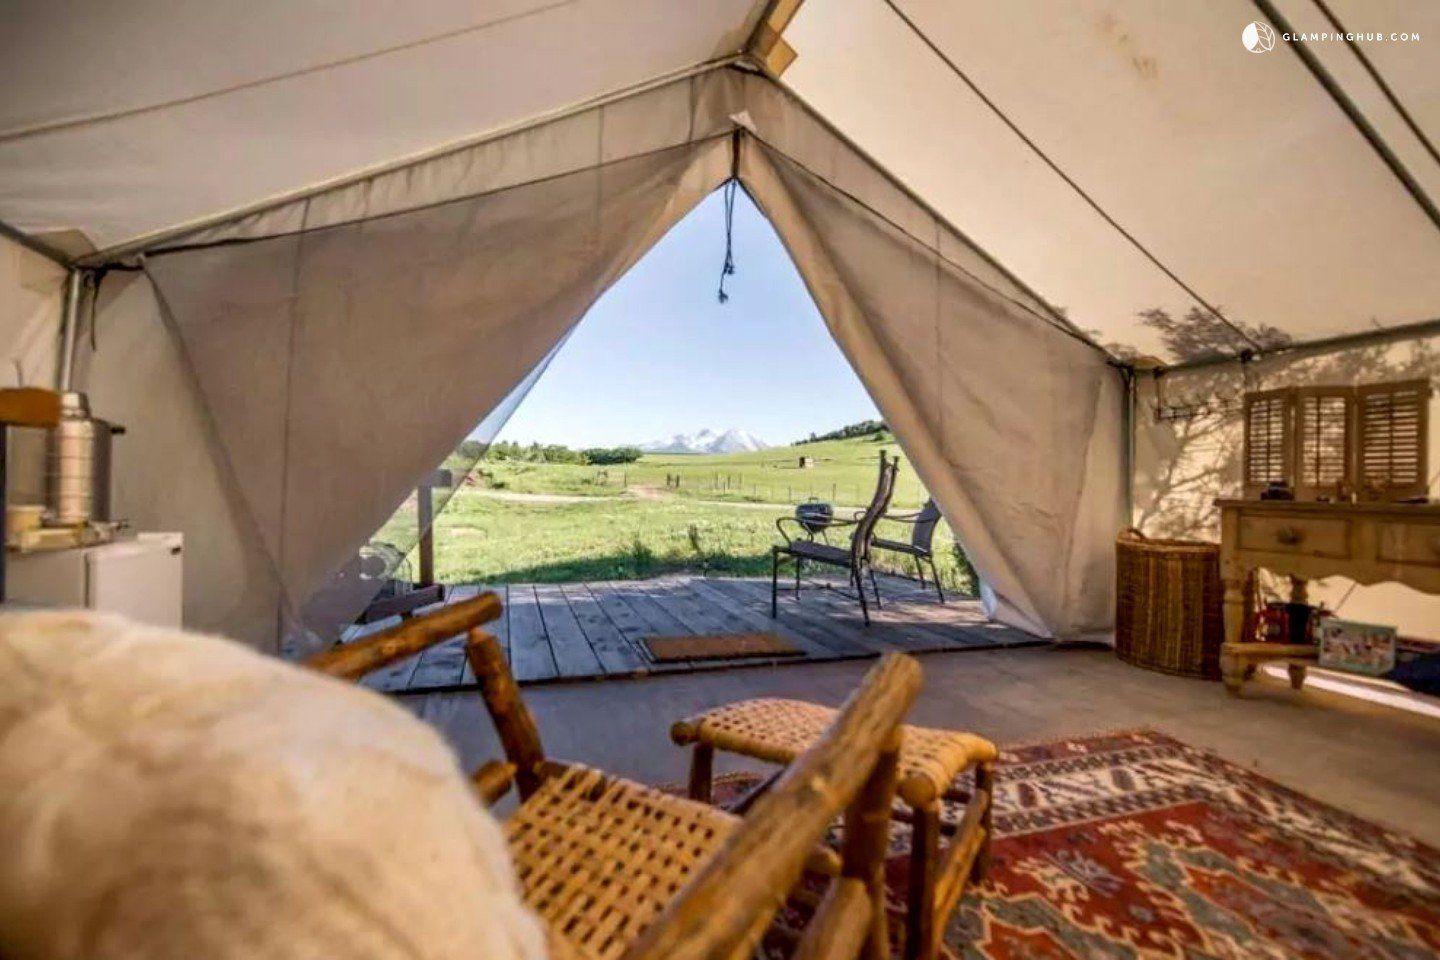 This unique safari tent can be found near White River National Forest, Colorado, and is perfect for a glamping getaway. The tent features a beautiful California king four poster bed that guarantees a peaceful sleep. There is also a deck where guests can enjoy soaking in the beautiful views.  Photo 3 of 14 in 12 Terrifically Glamorous Camping Options